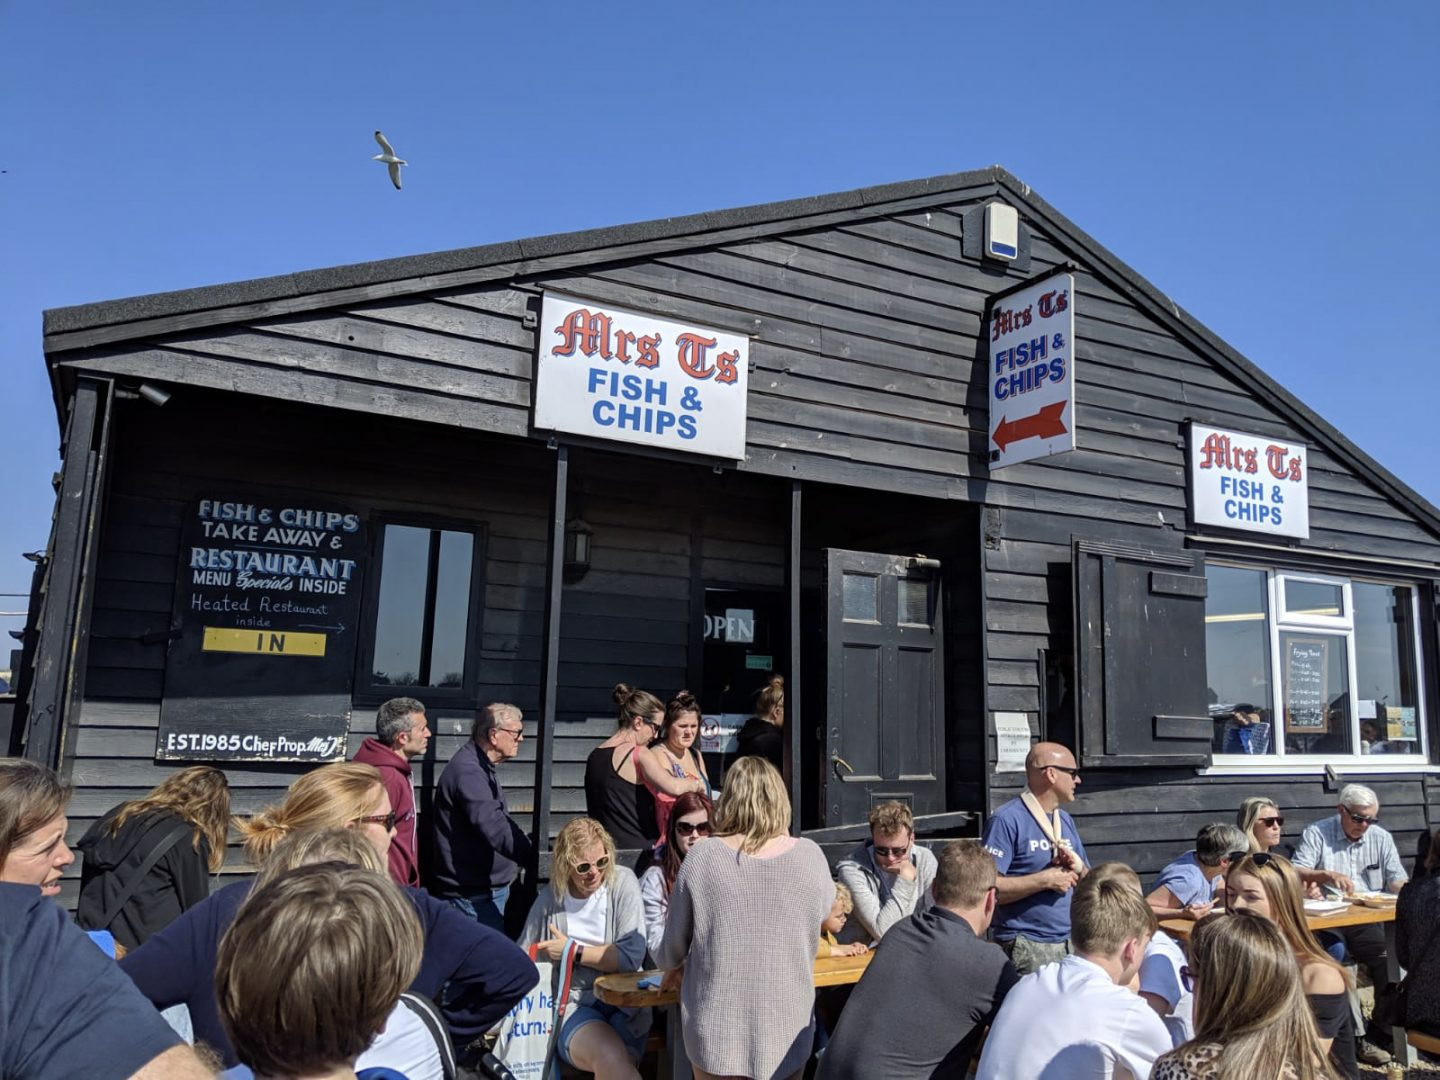 Things to do in Southwold: outside Mrs T's fish and chip shop, packed with people on benches